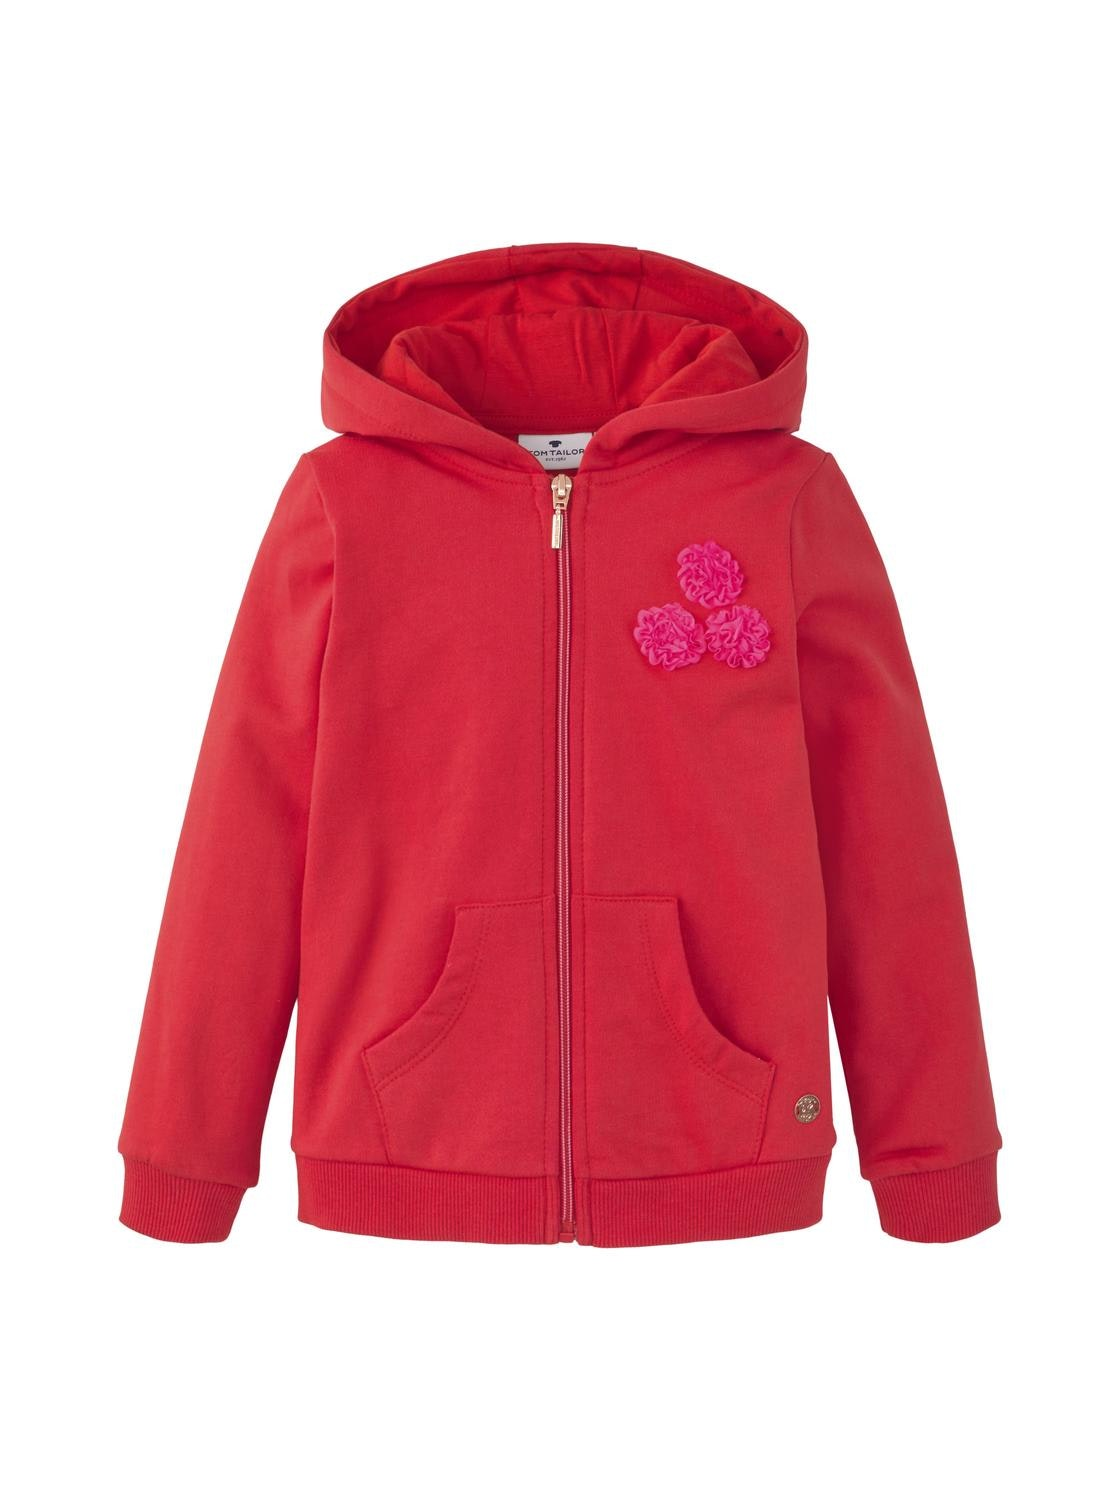 sweatjacket placed print, toreador-red